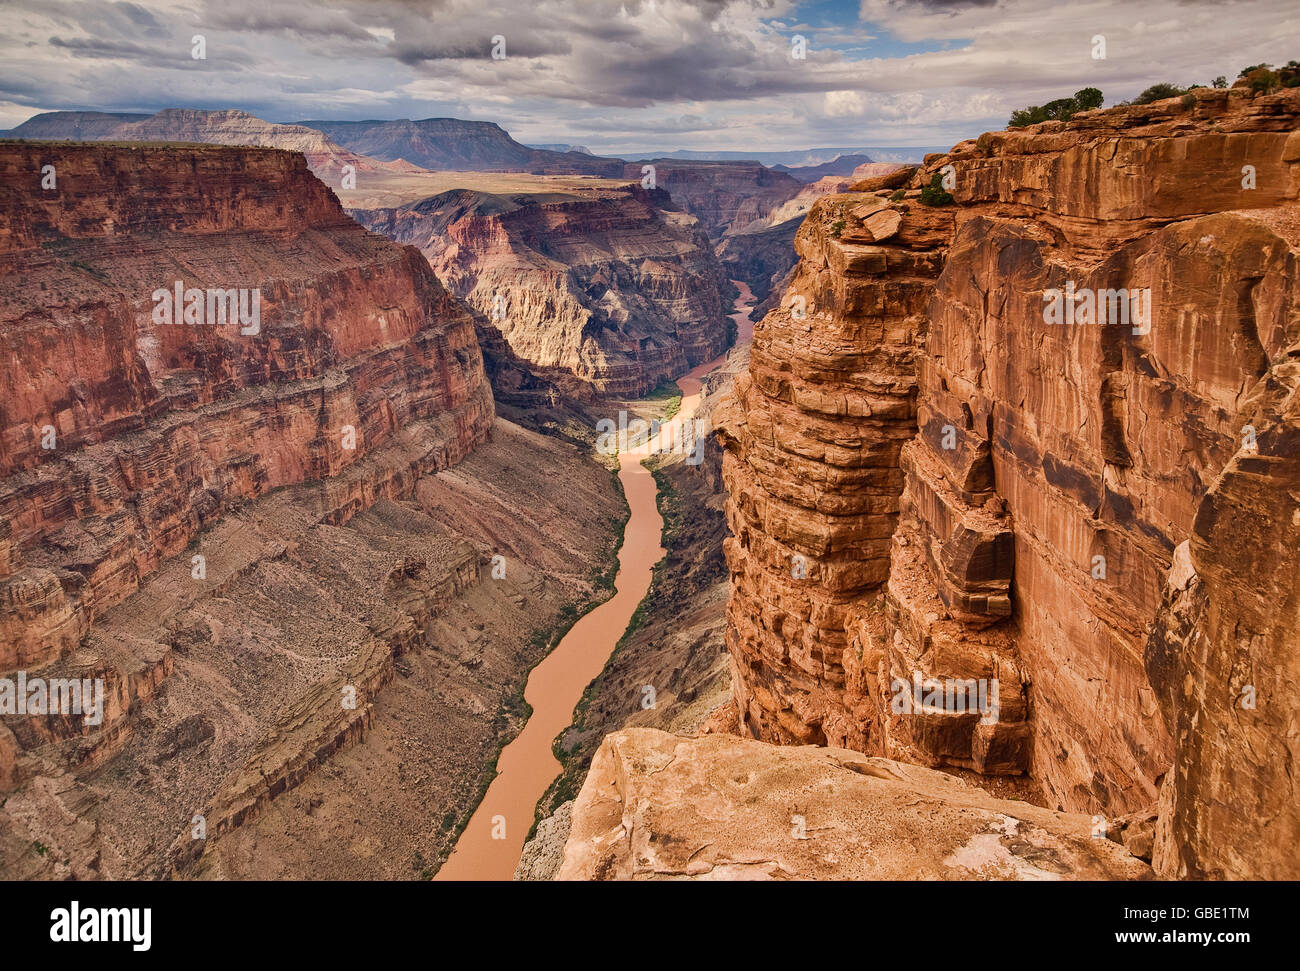 Grand Canyon from Toroweap Point at North Rim, 1000 meters above Colorado River, Arizona, USA Stock Photo